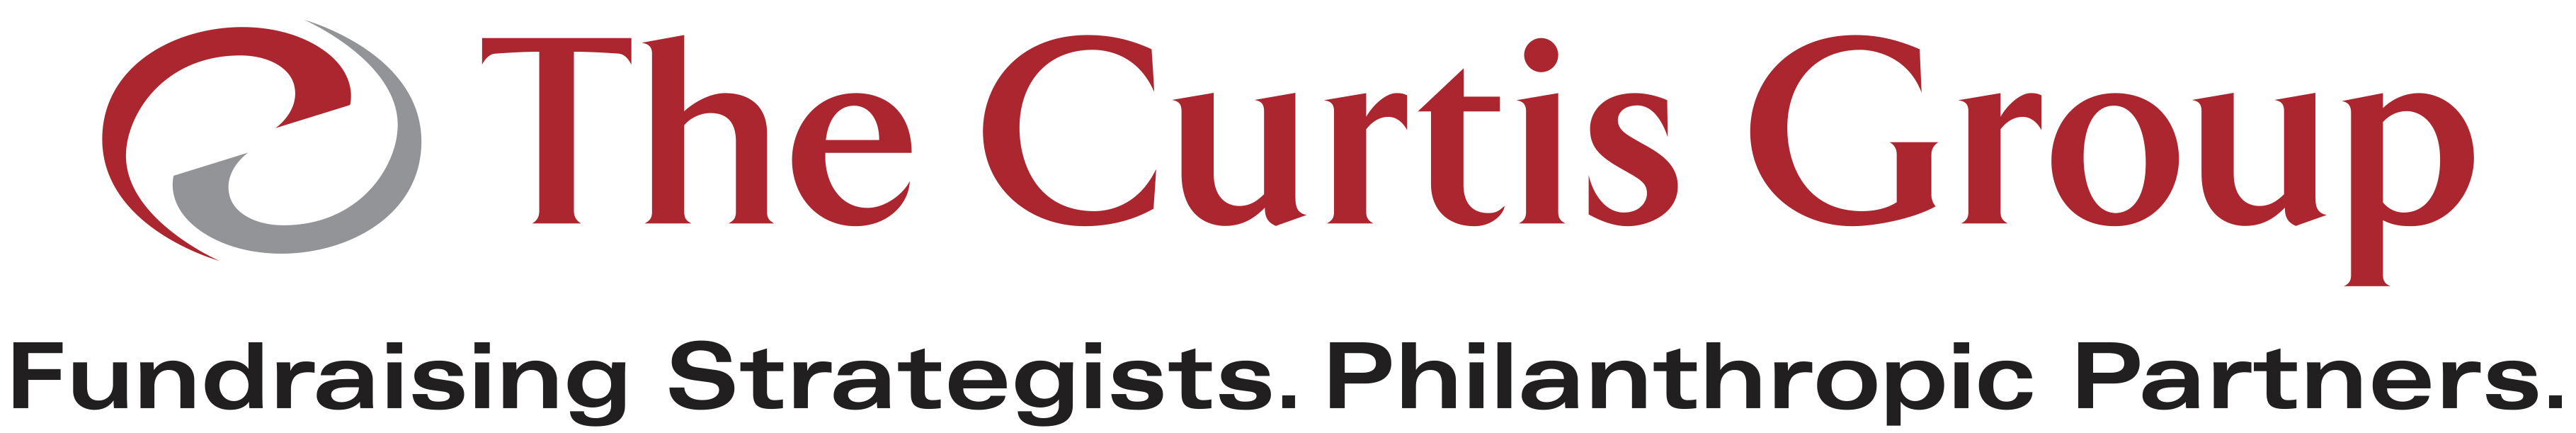 2018 Curtis_Group_logo_tag_rgb_large